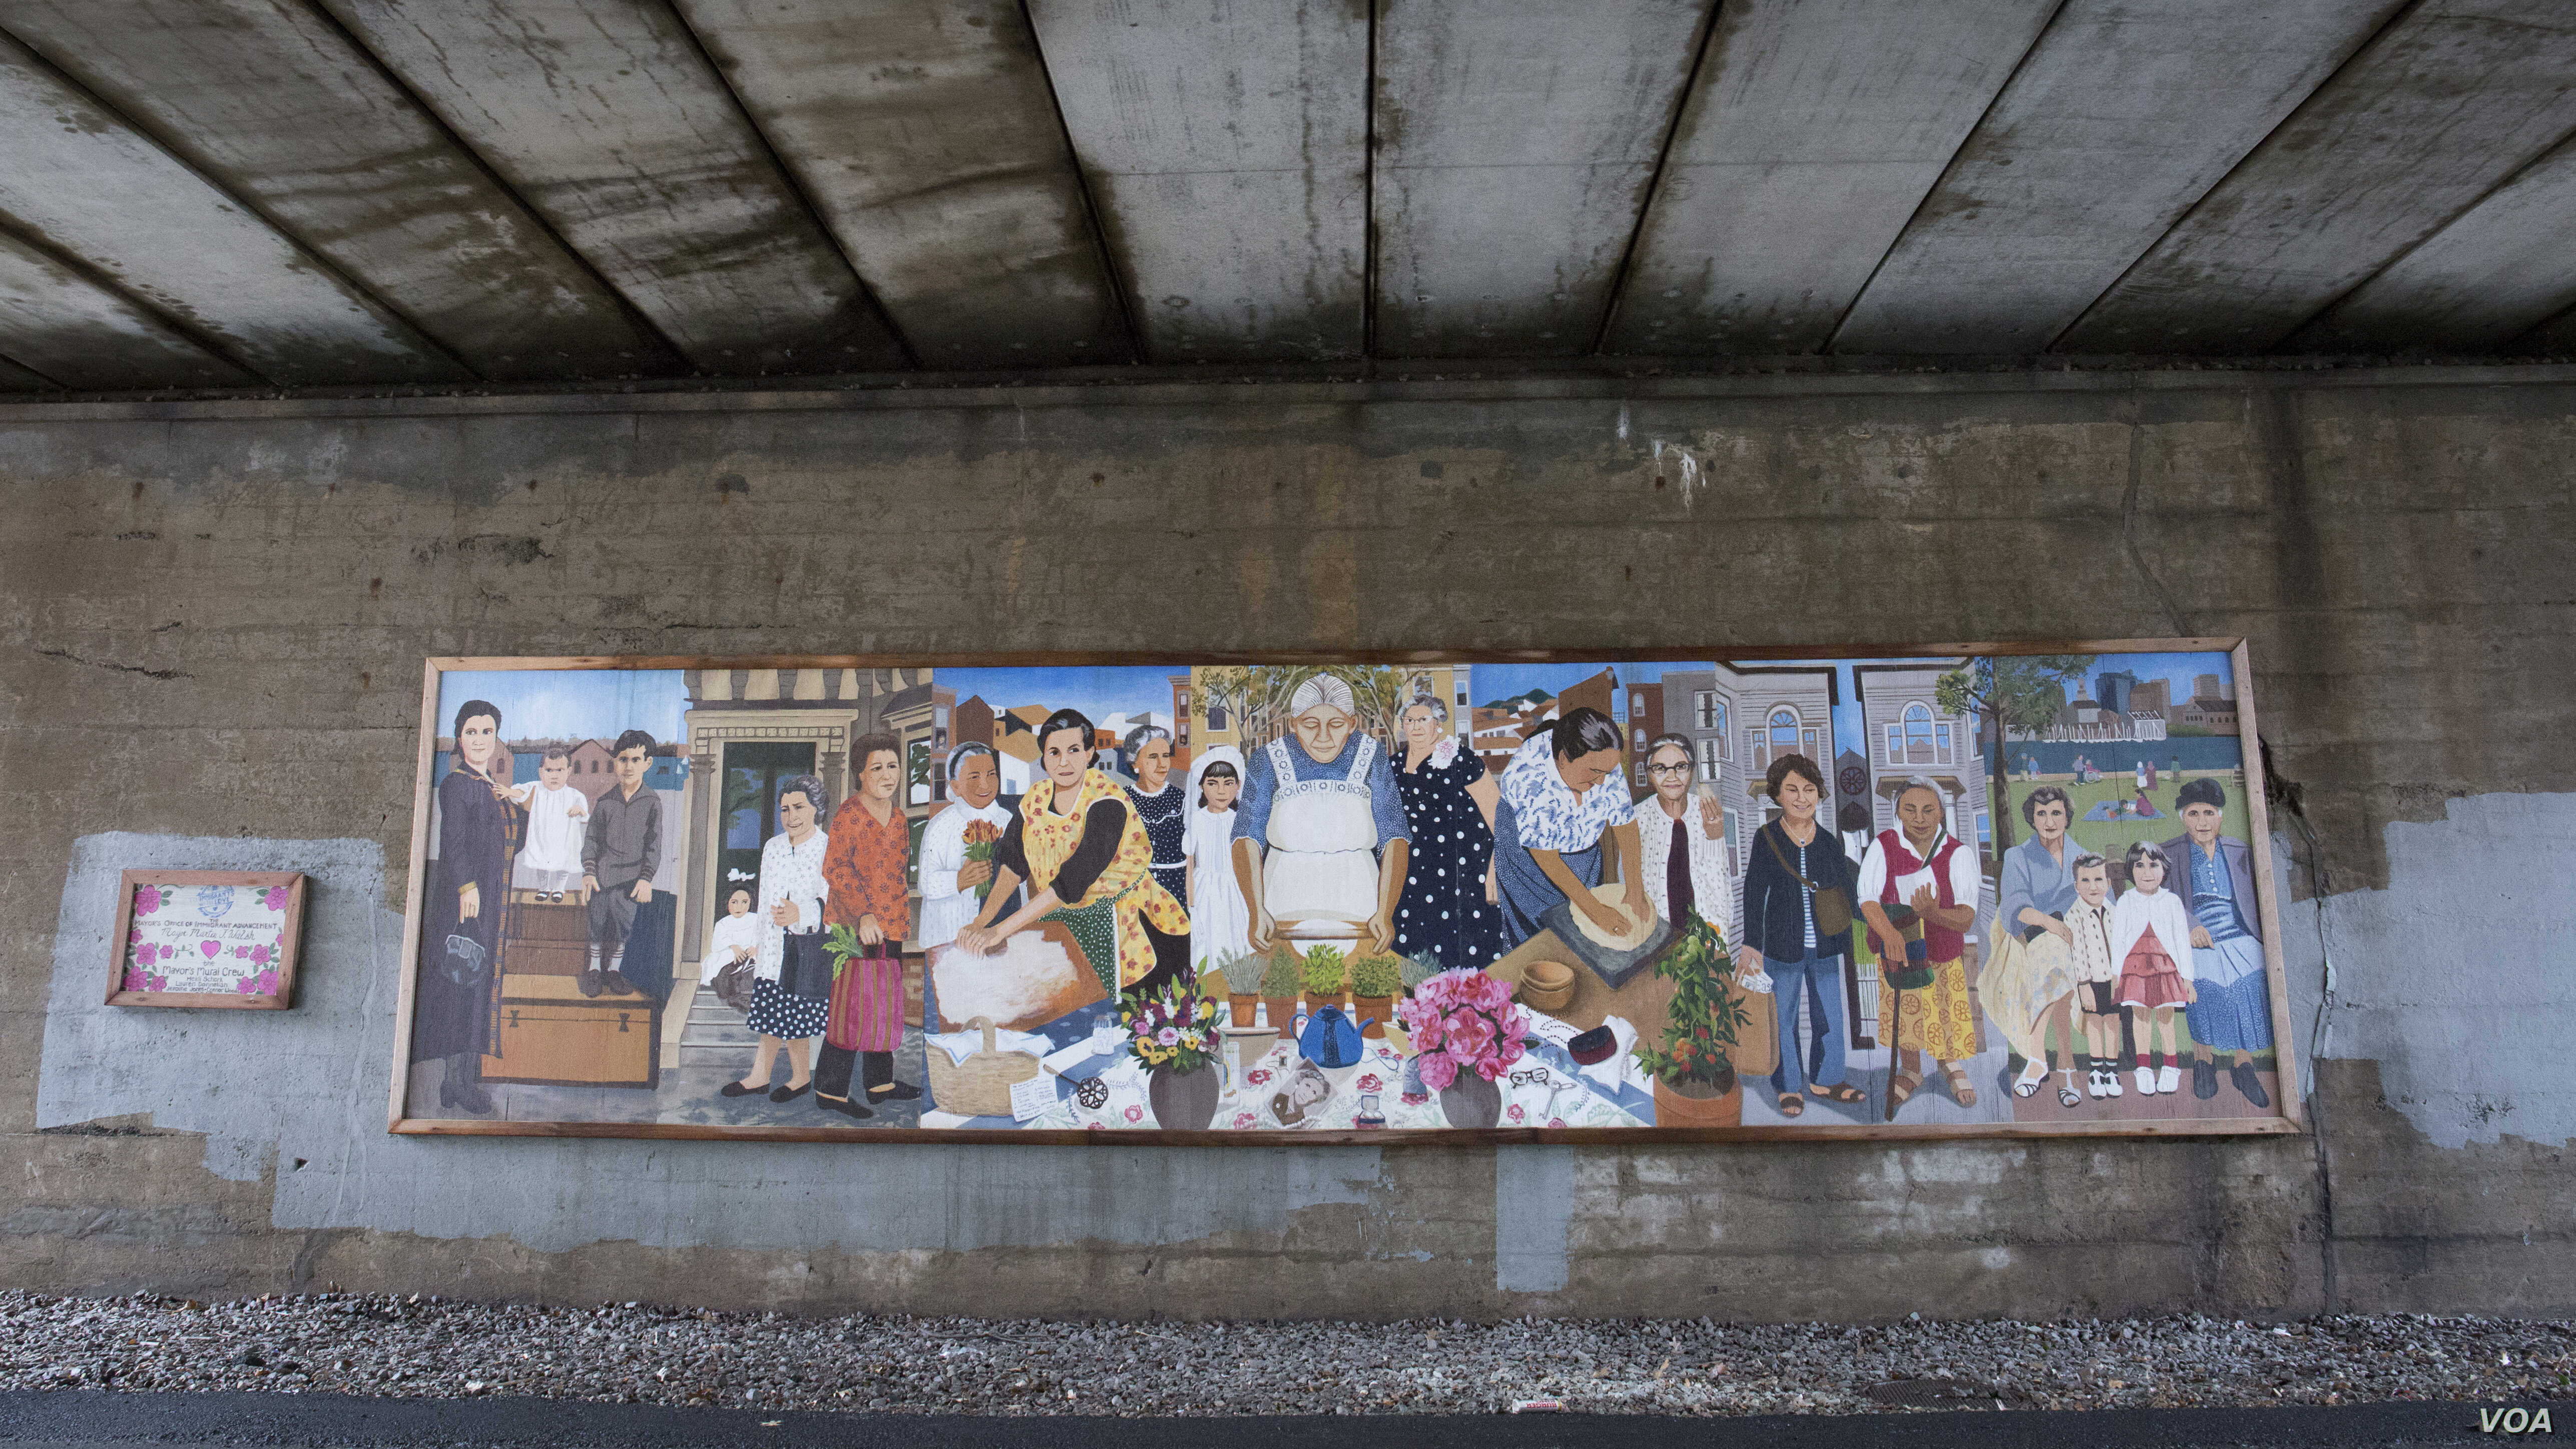 """Using photos of local grandmothers as inspiration, an East Boston """"Immigrant Grandmothers"""" mural aims to capture the similarities of each generation's stories in a single frame."""